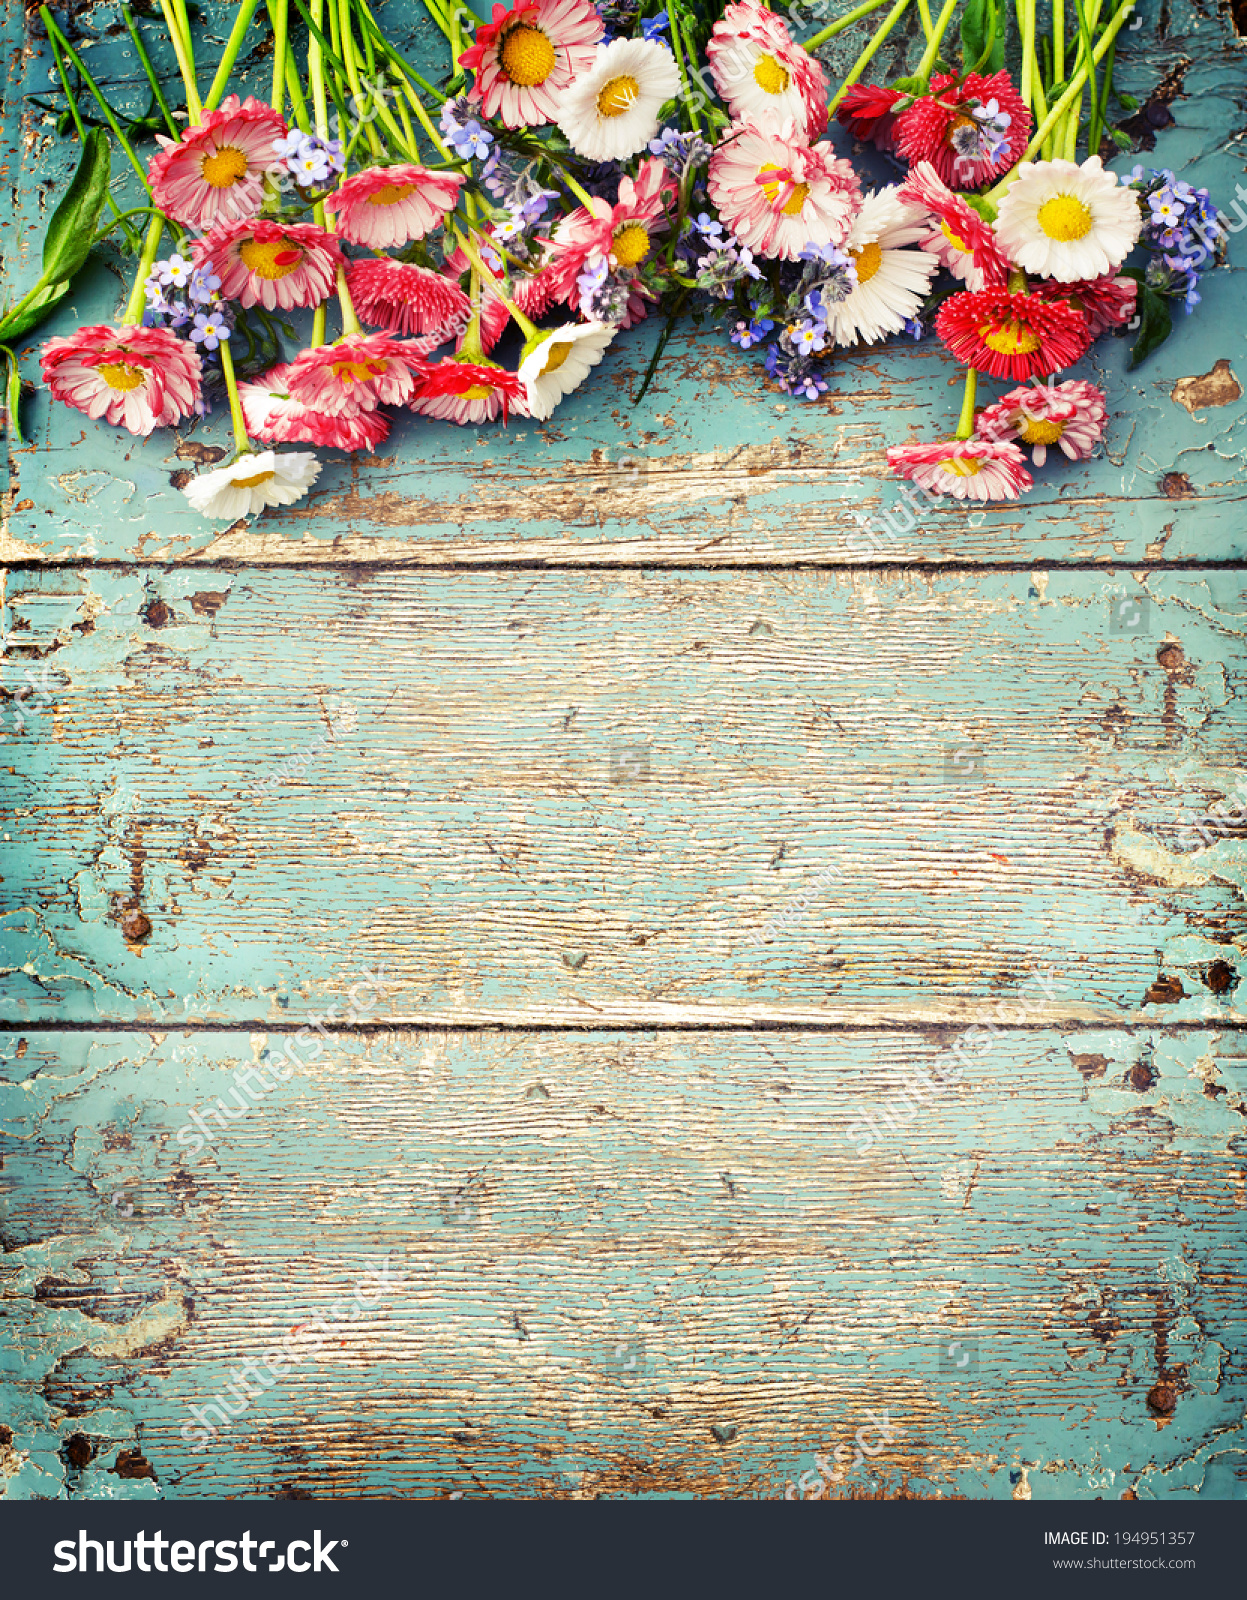 Summer Colorful Flowers On Vintage Wooden Stock Photo ...